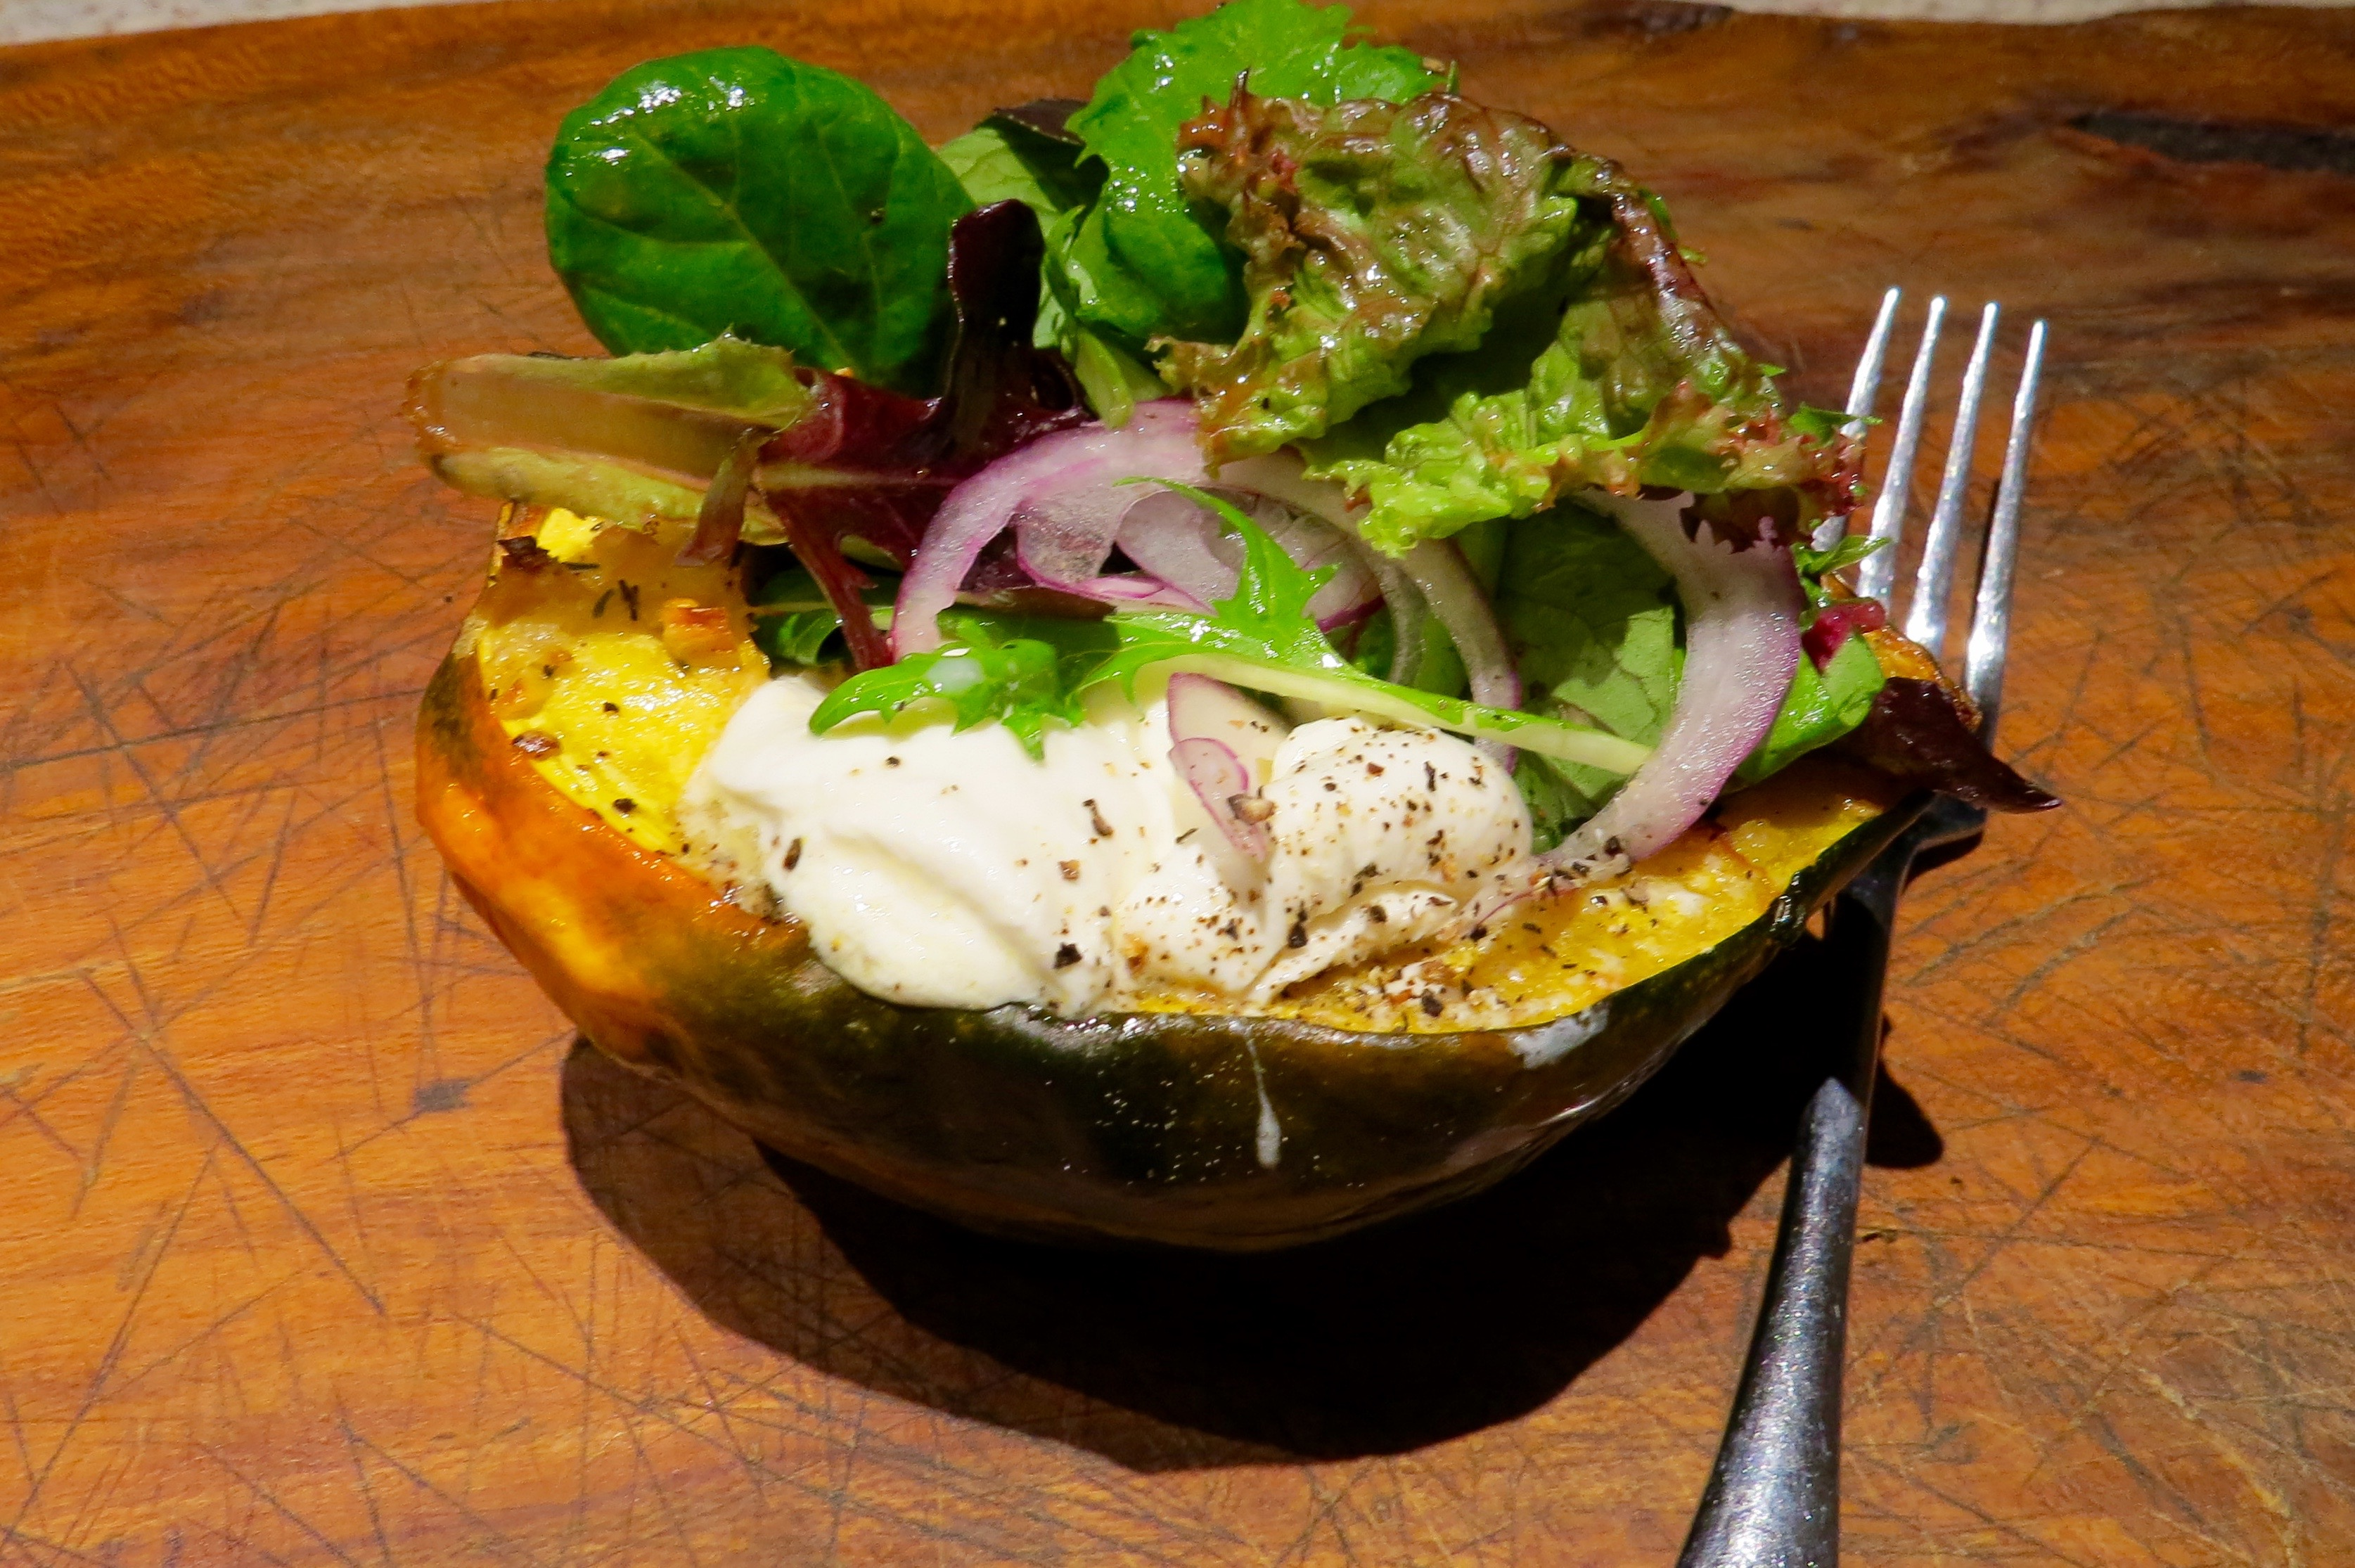 ROASTED ACORN SQUASH with GARLIC BUTTER and BURRATA